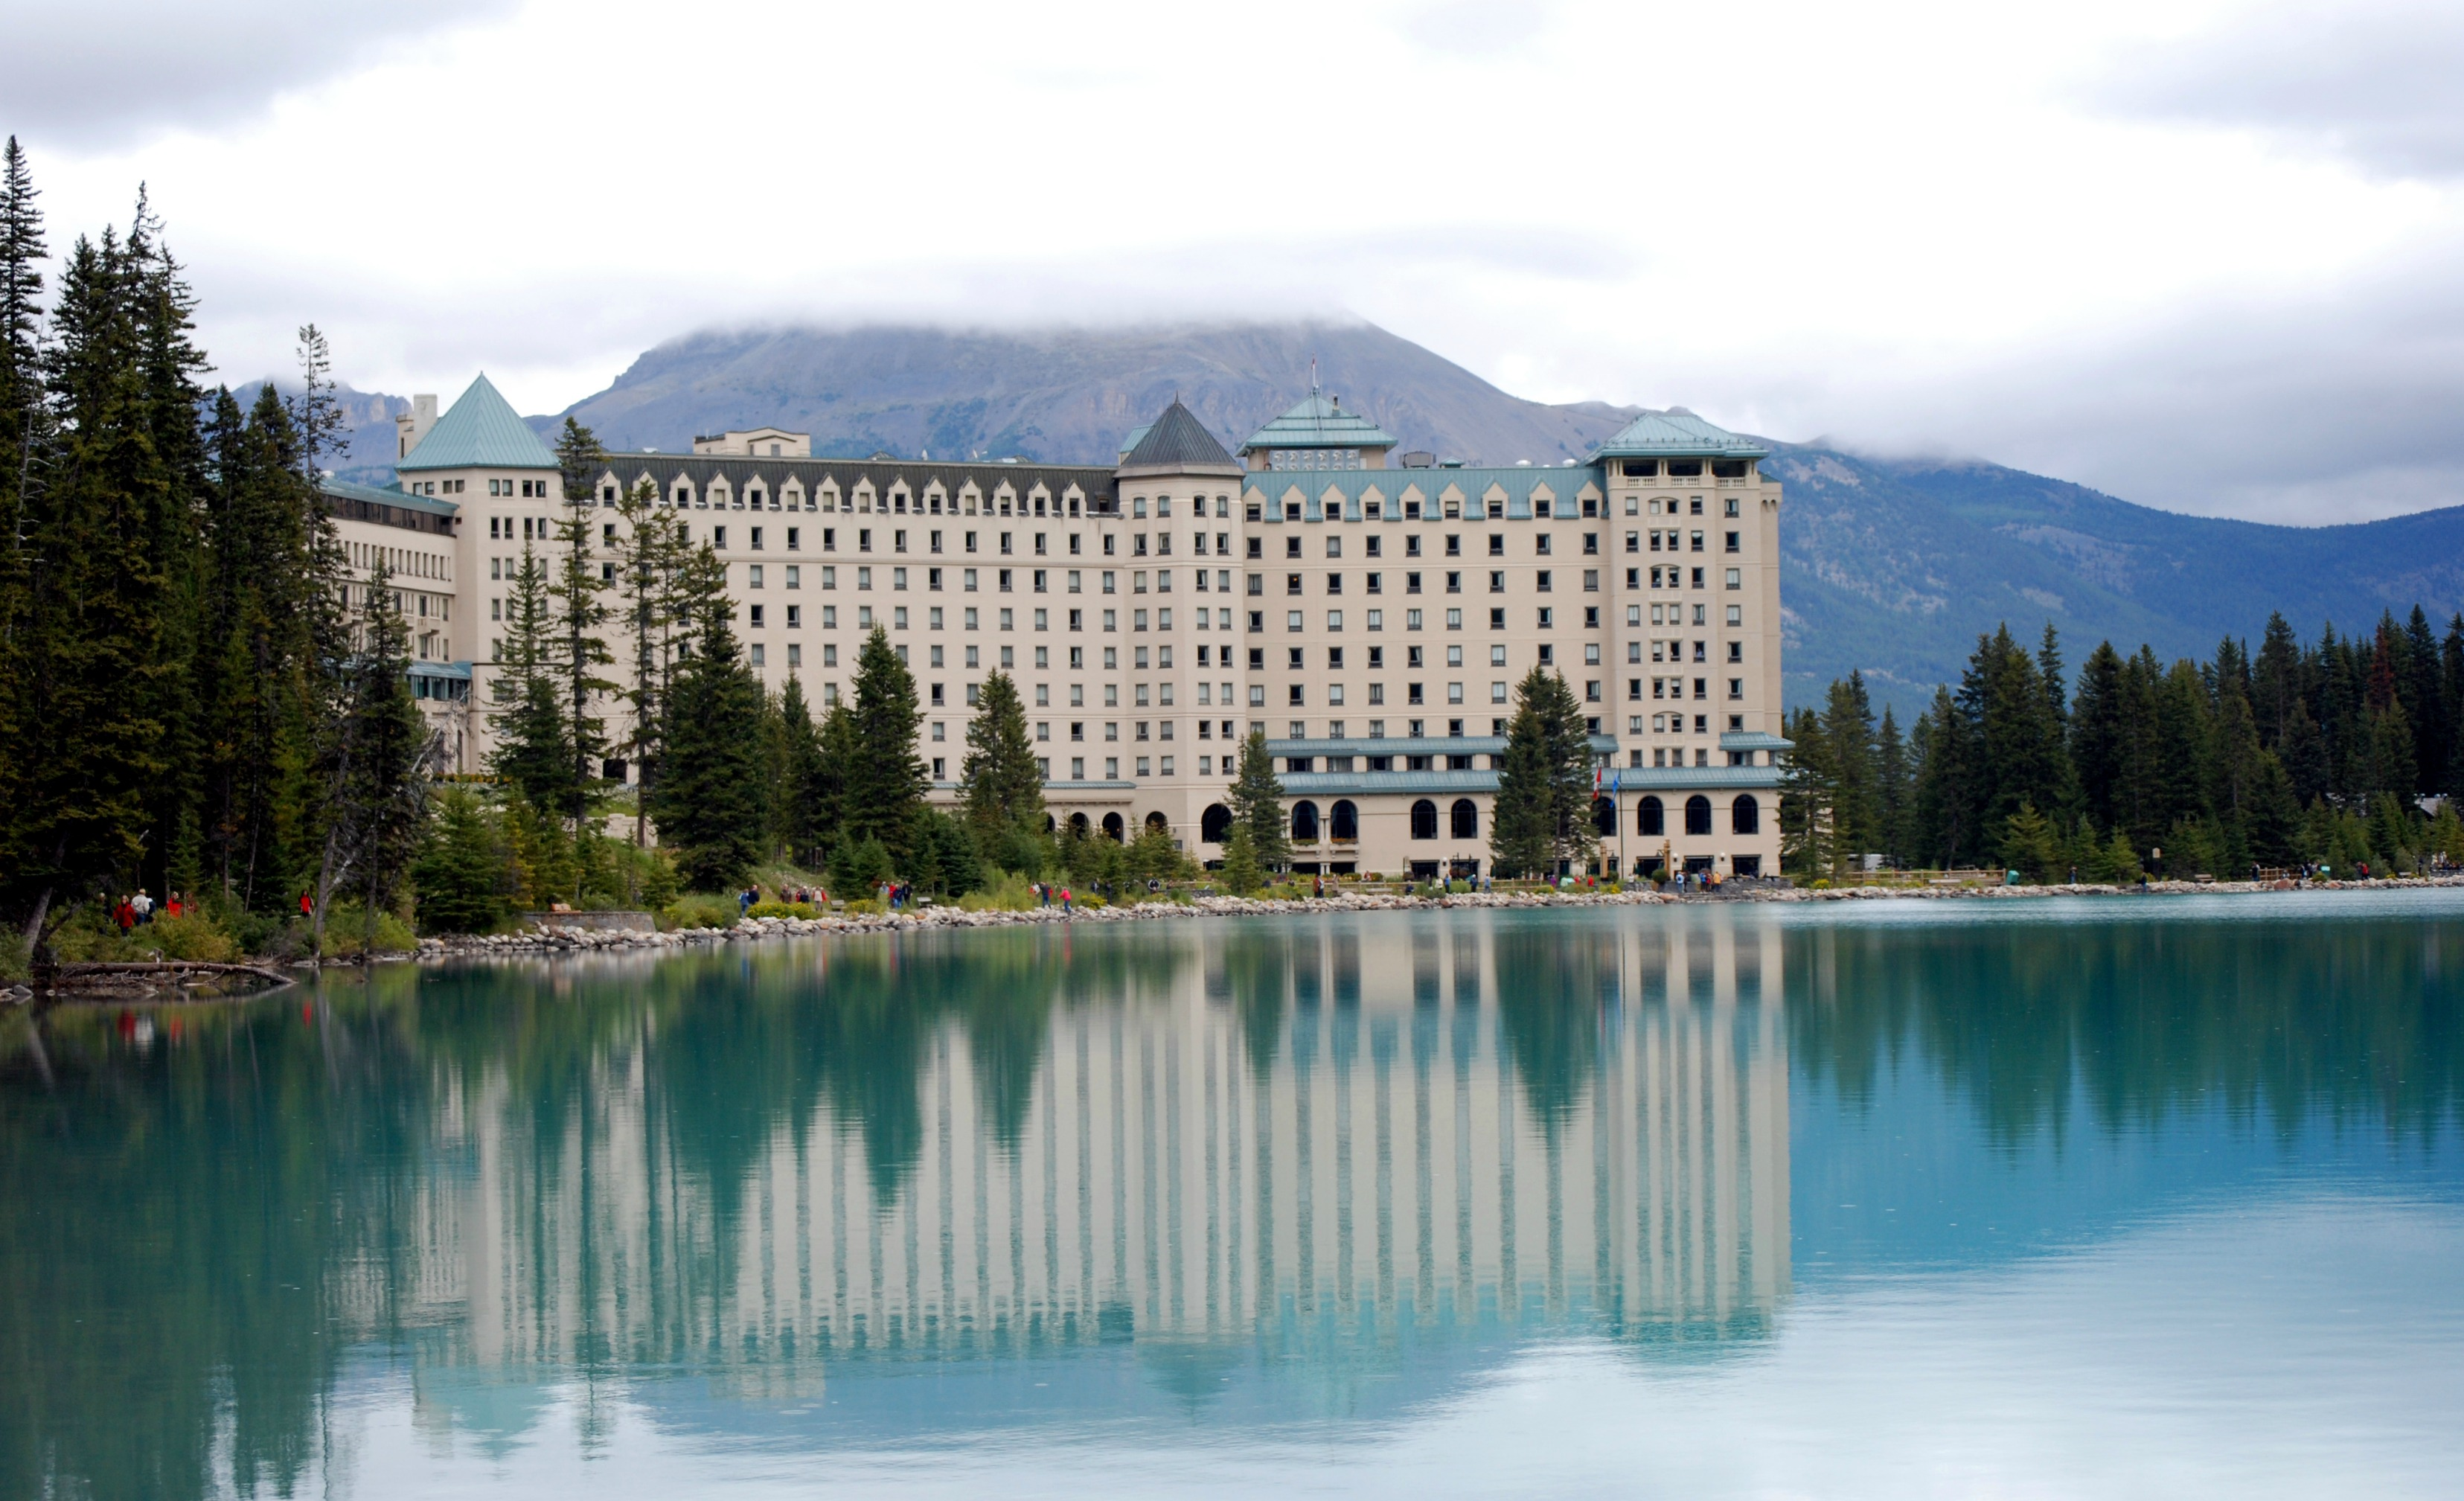 8 Fantasy Castles In Canada You Probably Didn't Know About